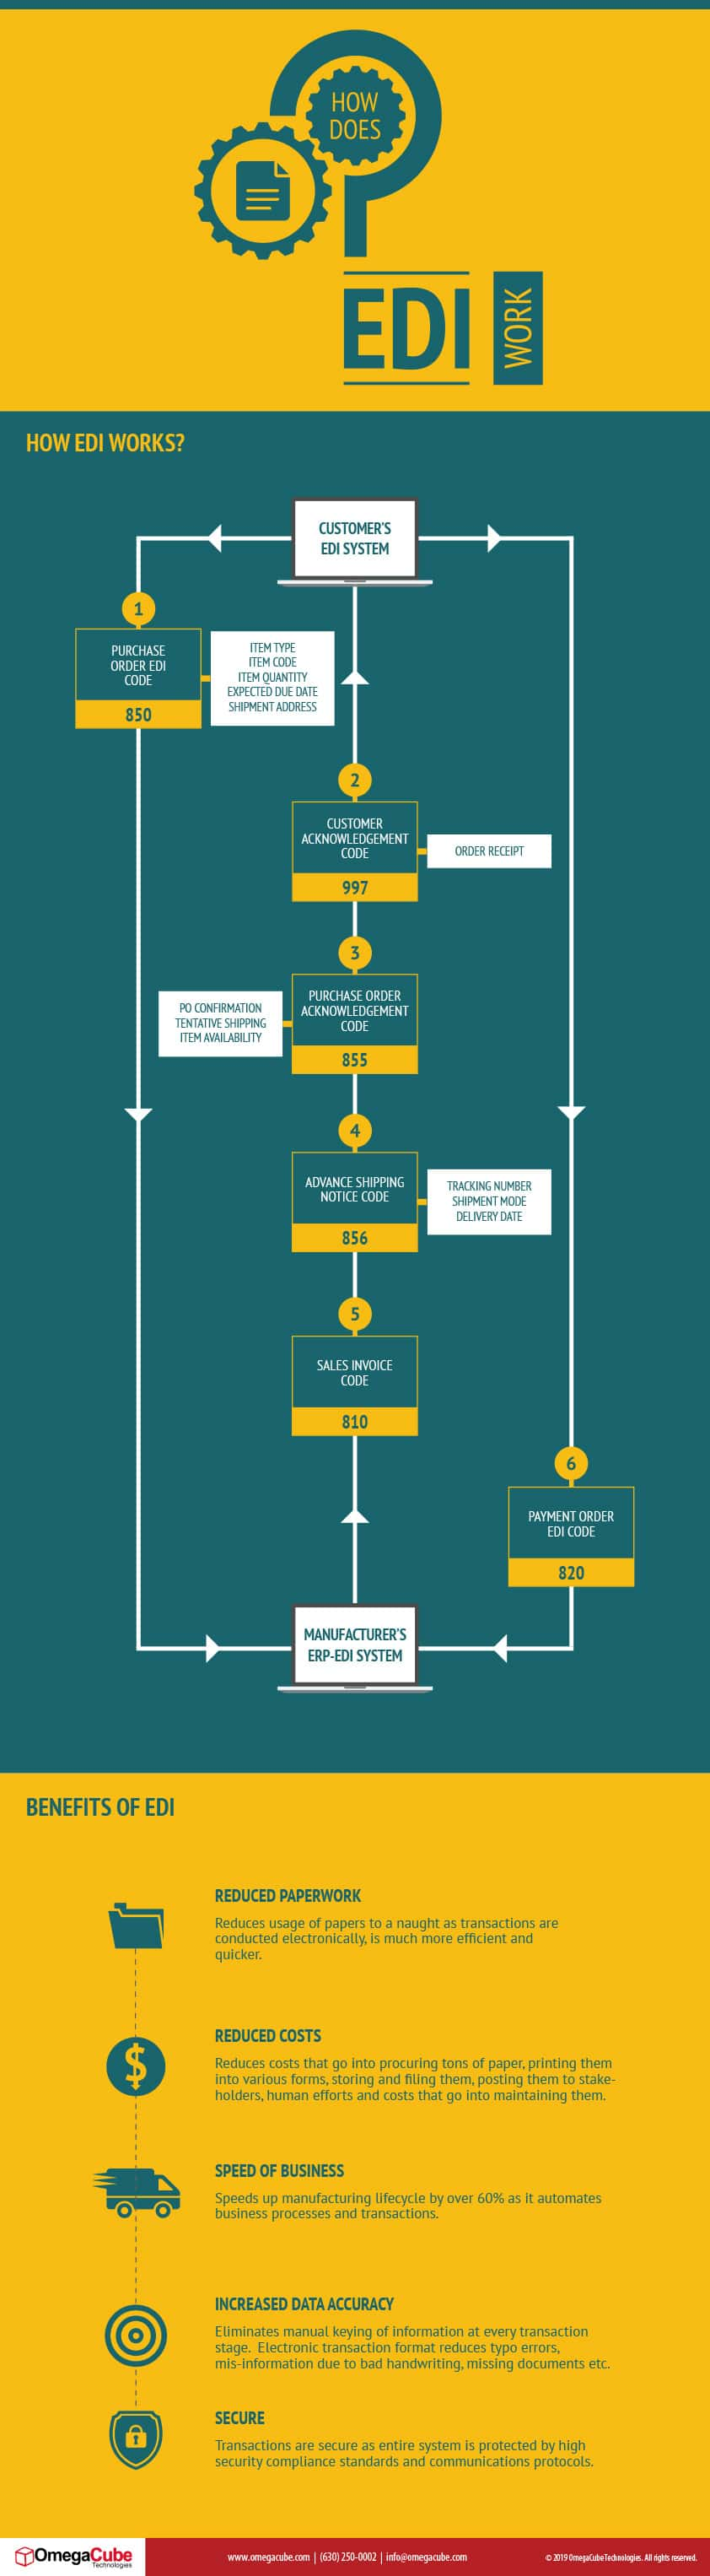 How does EDI work?